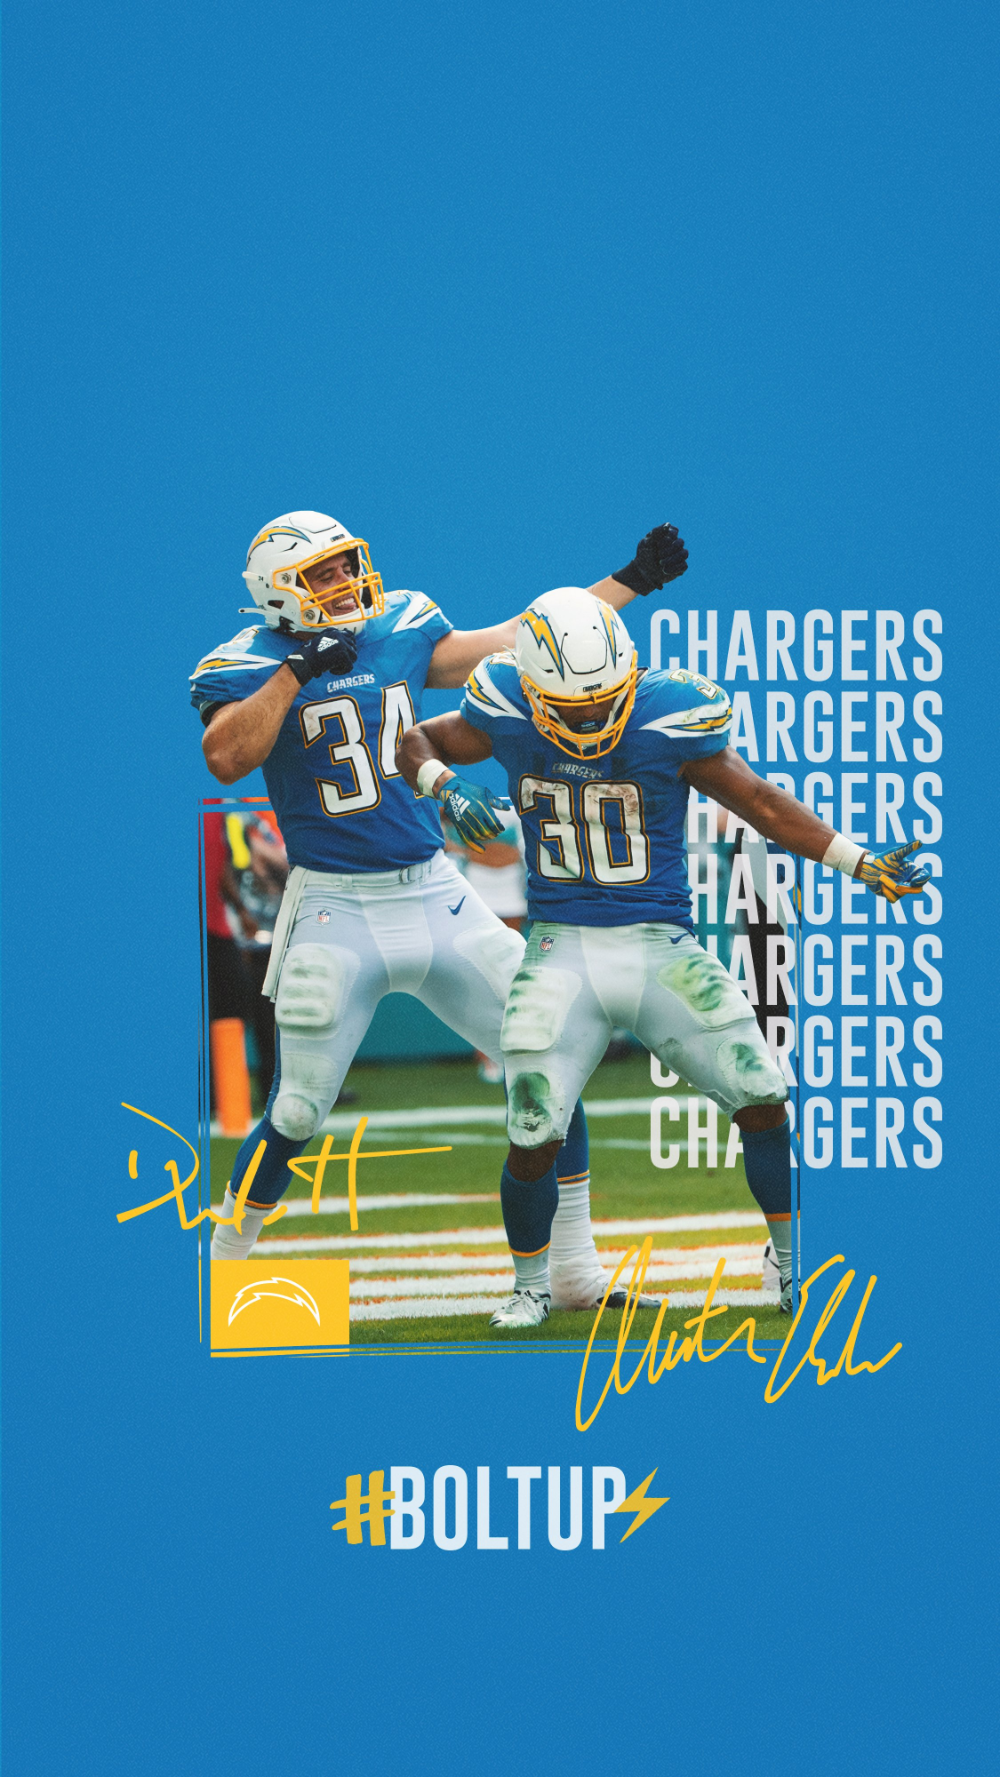 Chargers Wallpapers Los Angeles Chargers Chargers Com Los Angeles Chargers Sports Graphic Design Chargers